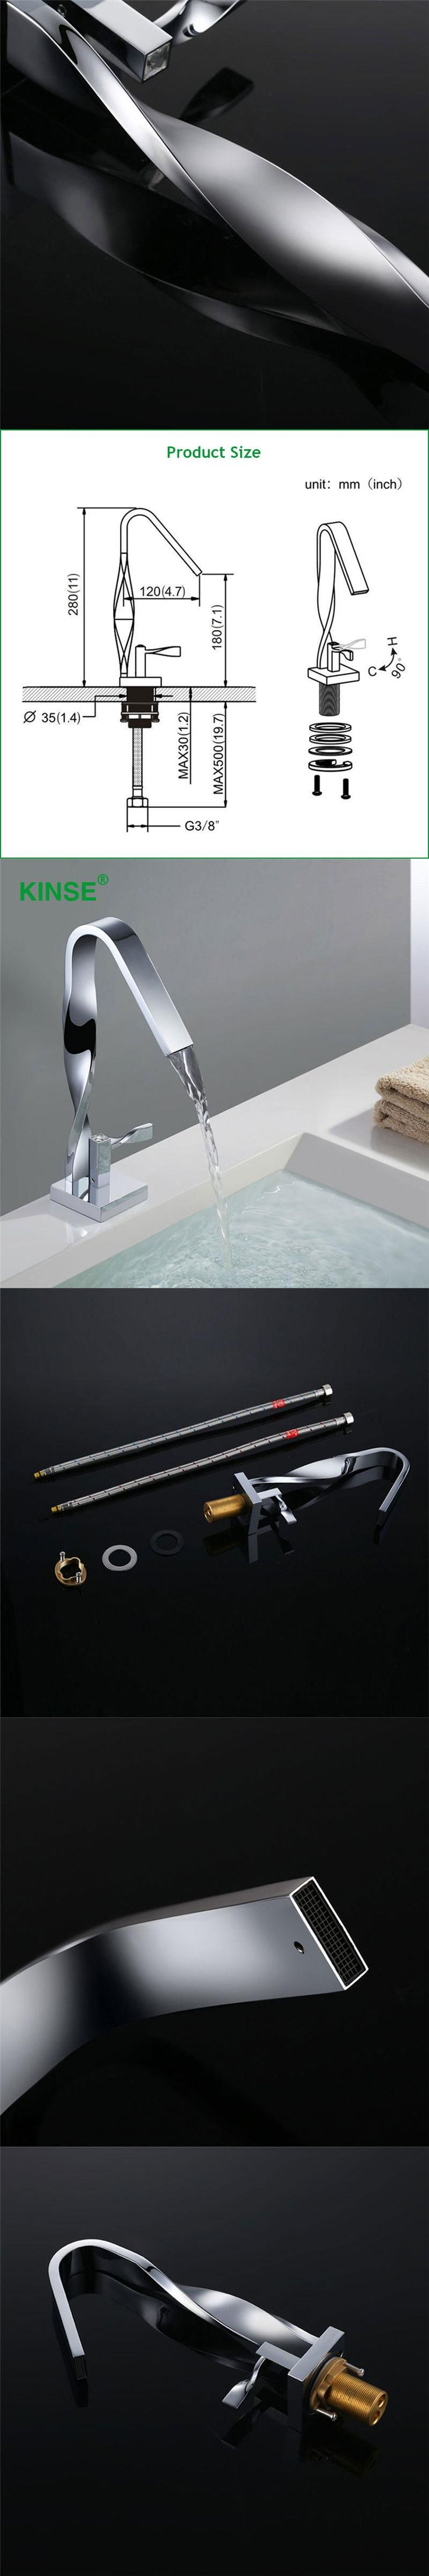 KINSE Art Style Brass Material Chrome Finish Contemporary Bathroom Sink Faucet